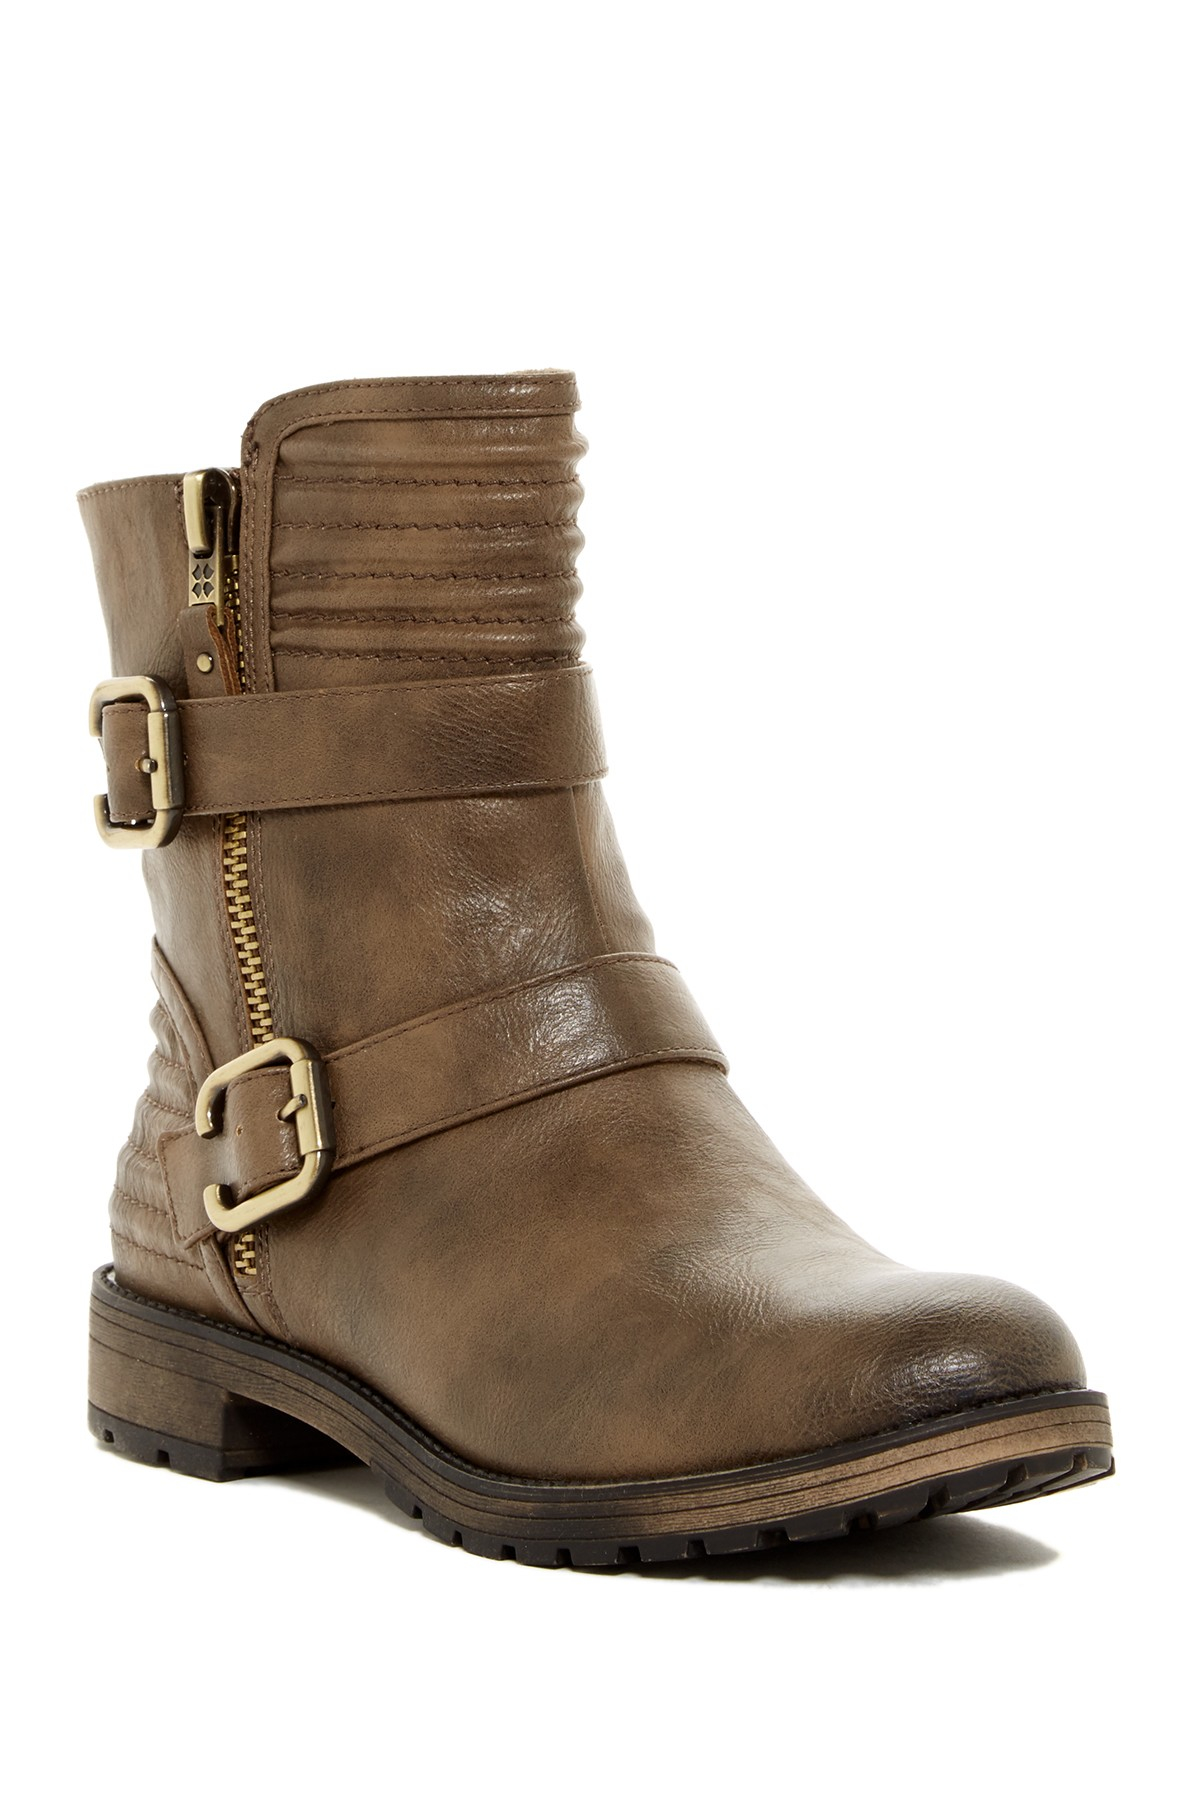 naturalizer tandie zip boot widths available in